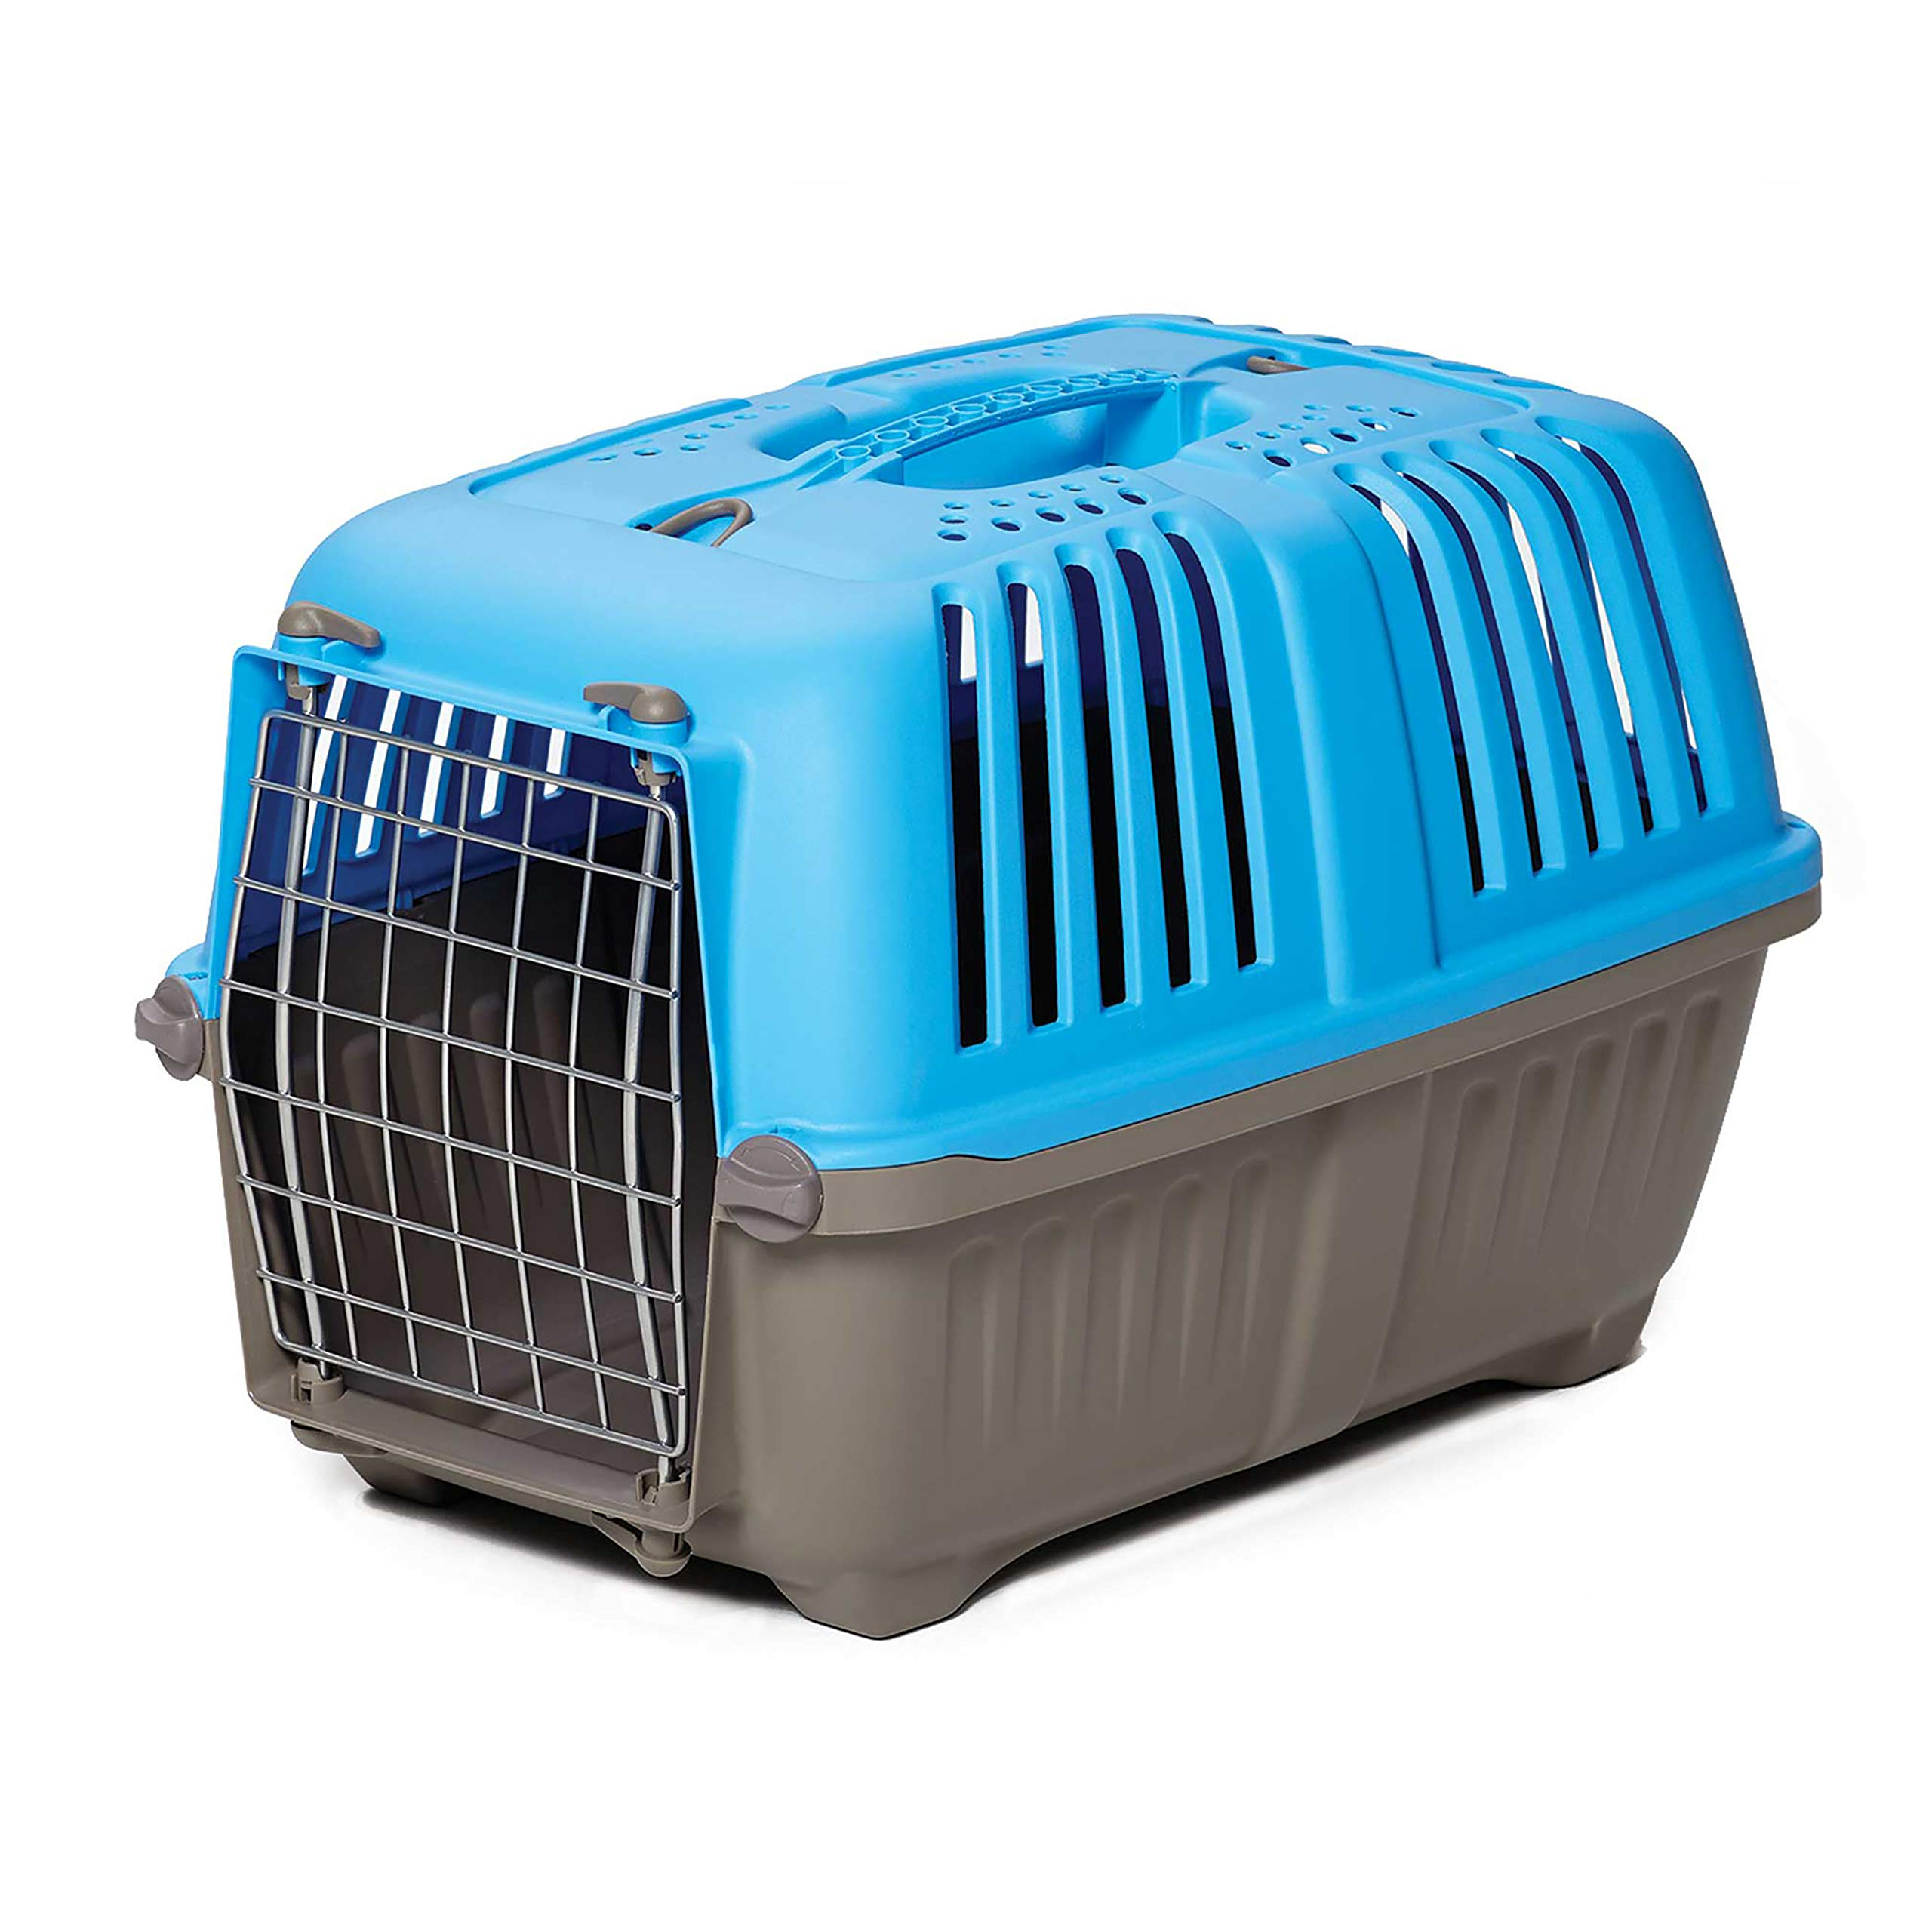 Pet Carrier: Hard-Sided Dog Carrier, Cat Carrier, Small Animal Carrier in Blue| Inside Dims 20.70L x 13.22W x 14.09H & Suitable for Tiny Dog Breeds | Perfect Dog Kennel Travel Carrier for Quick Trips by MidWest Homes for Pets